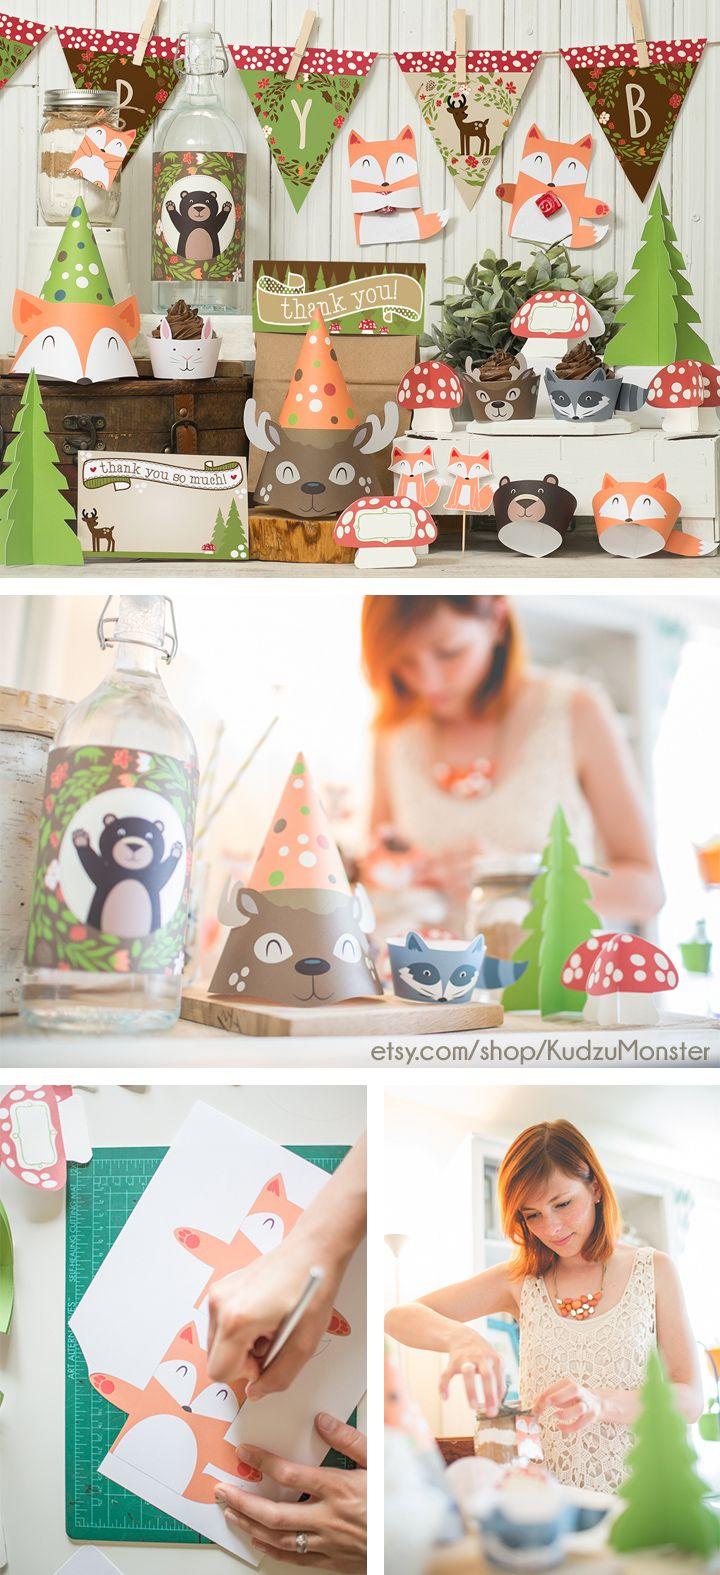 woodland party decor for 1st birthday or baby shower Instant Download Printable DIY kit on etsy.com/shop/Kudzumonster